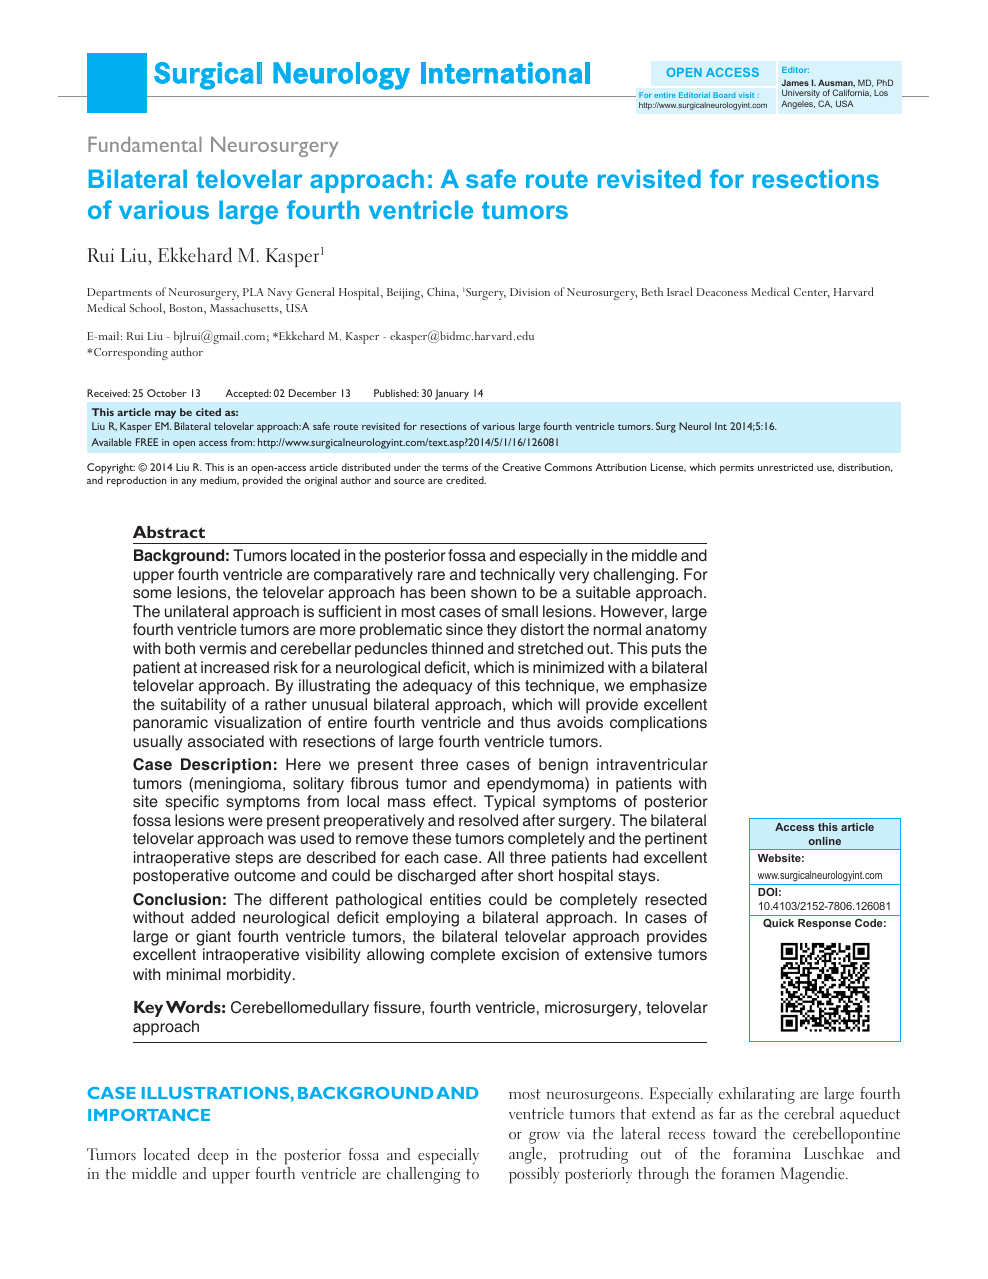 Bilateral telovelar approach: A safe route revisited for resections